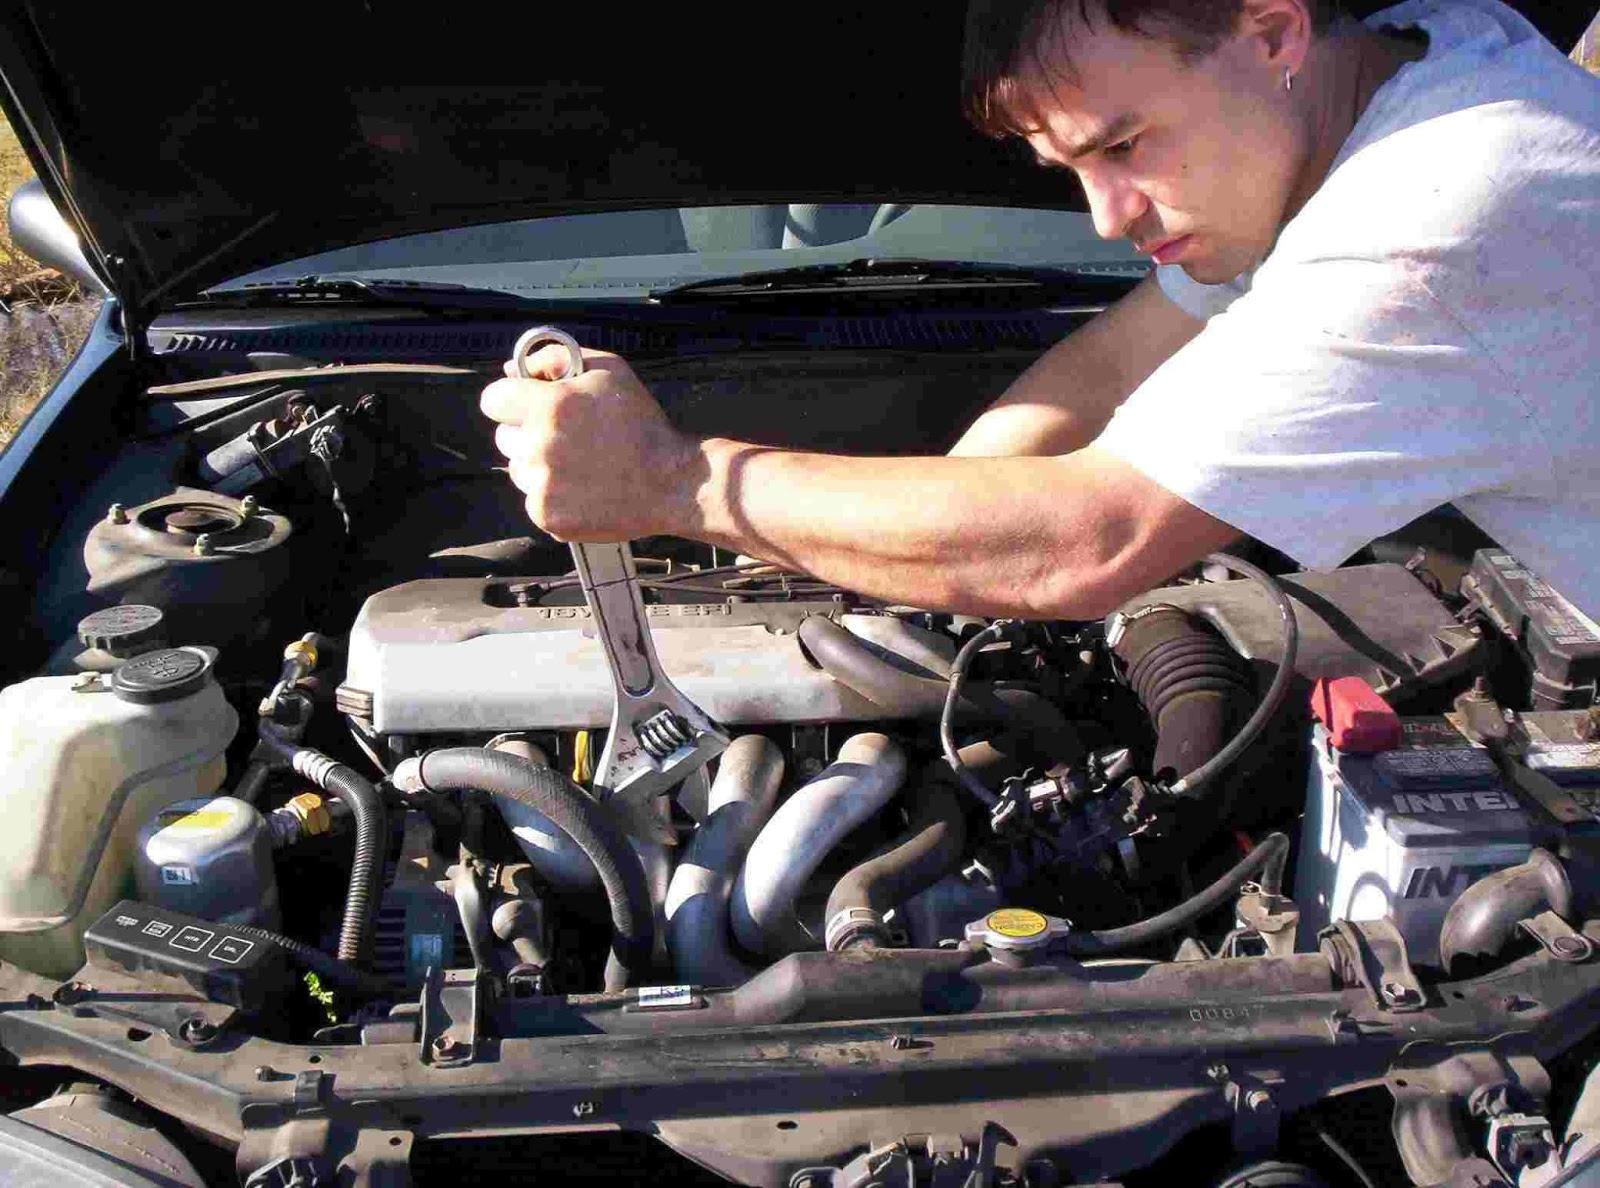 Fernando Dream Cars Want To Learn How To Repair Vehicle